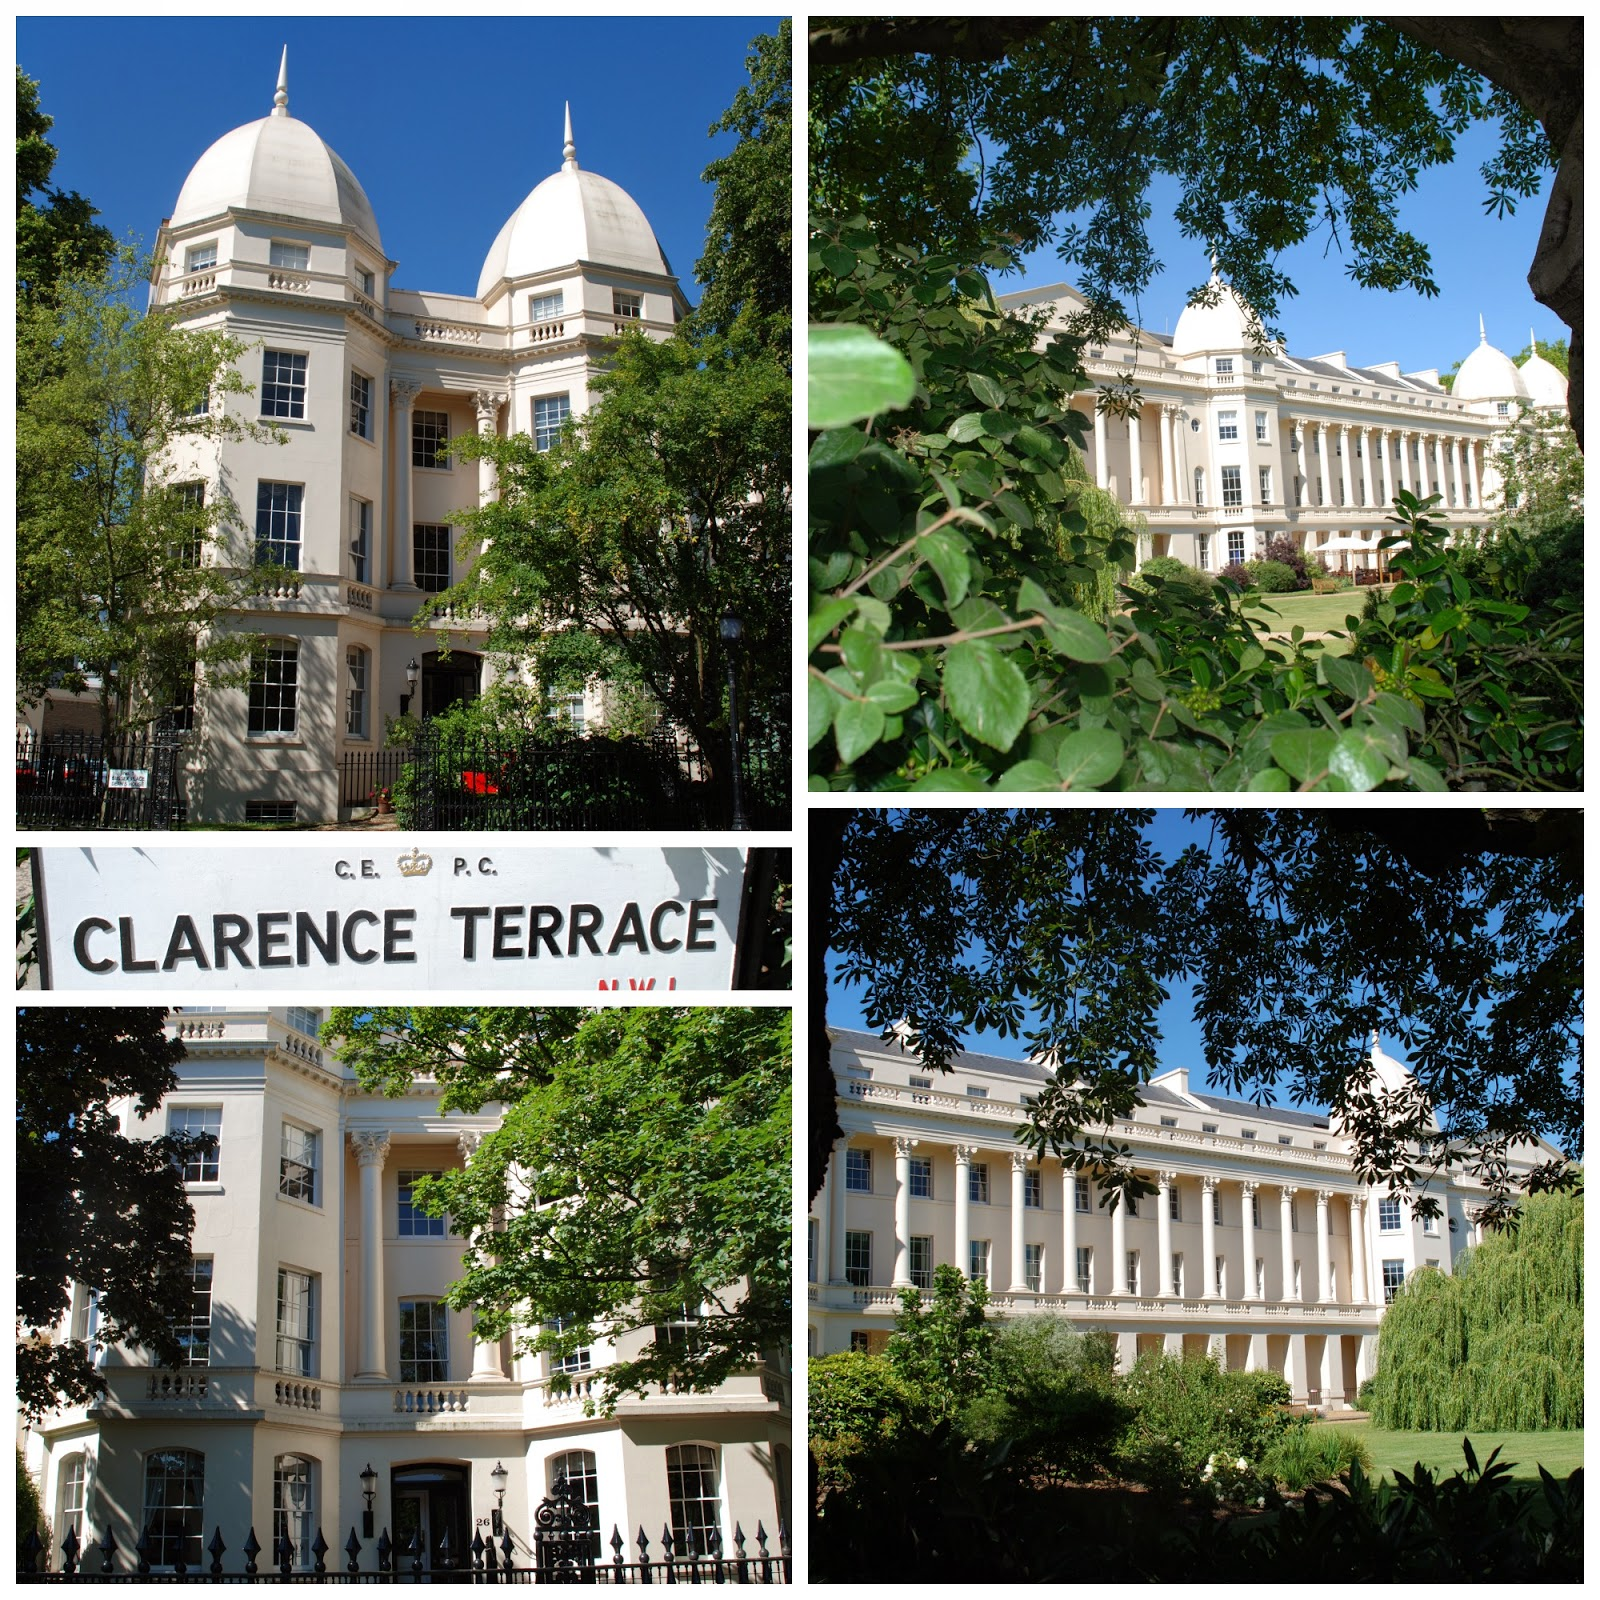 Clarence Terrace, London